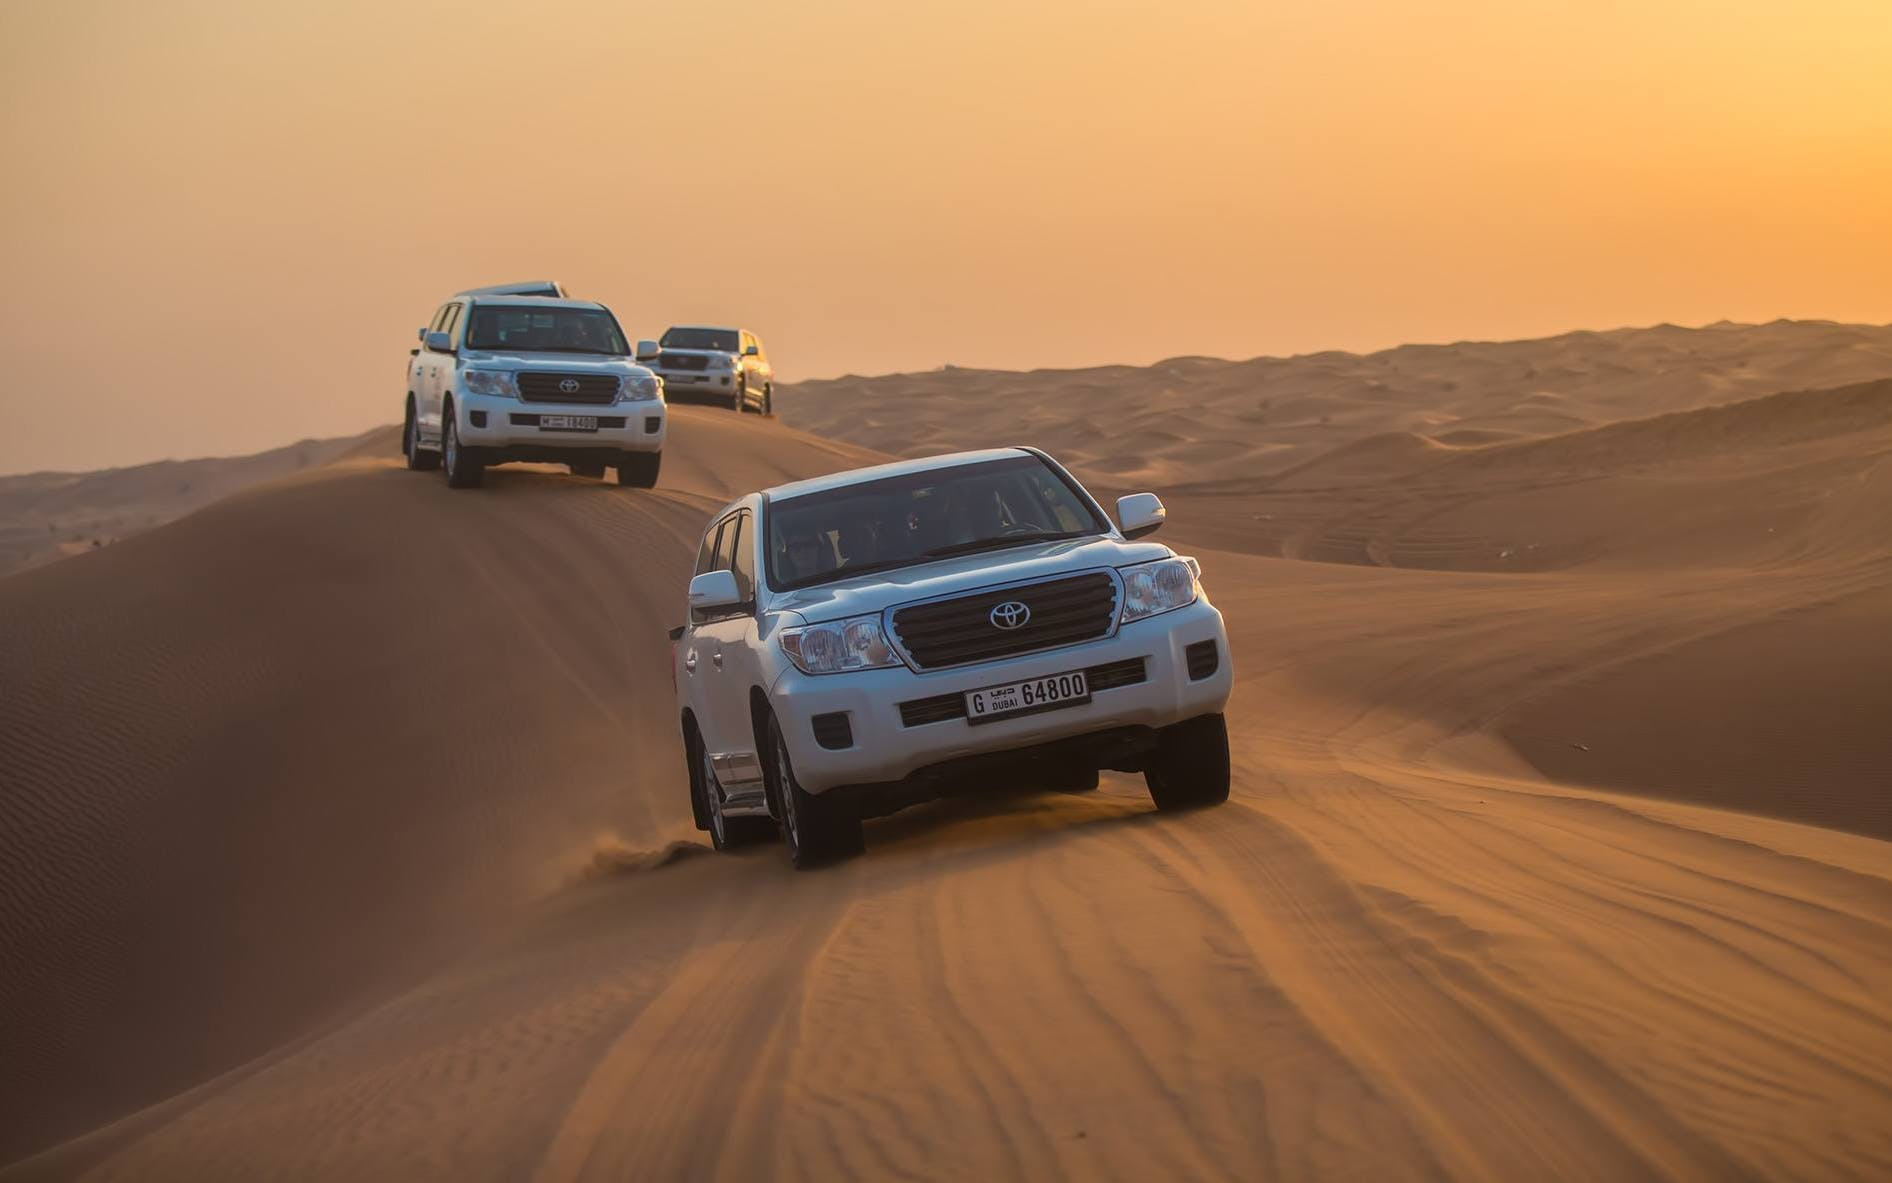 03c5db54 9542 428c B5f5 313c4bac0318 1887 Dubai Red Dune Desert Safari With Bbq Dinner And Entertainment 04